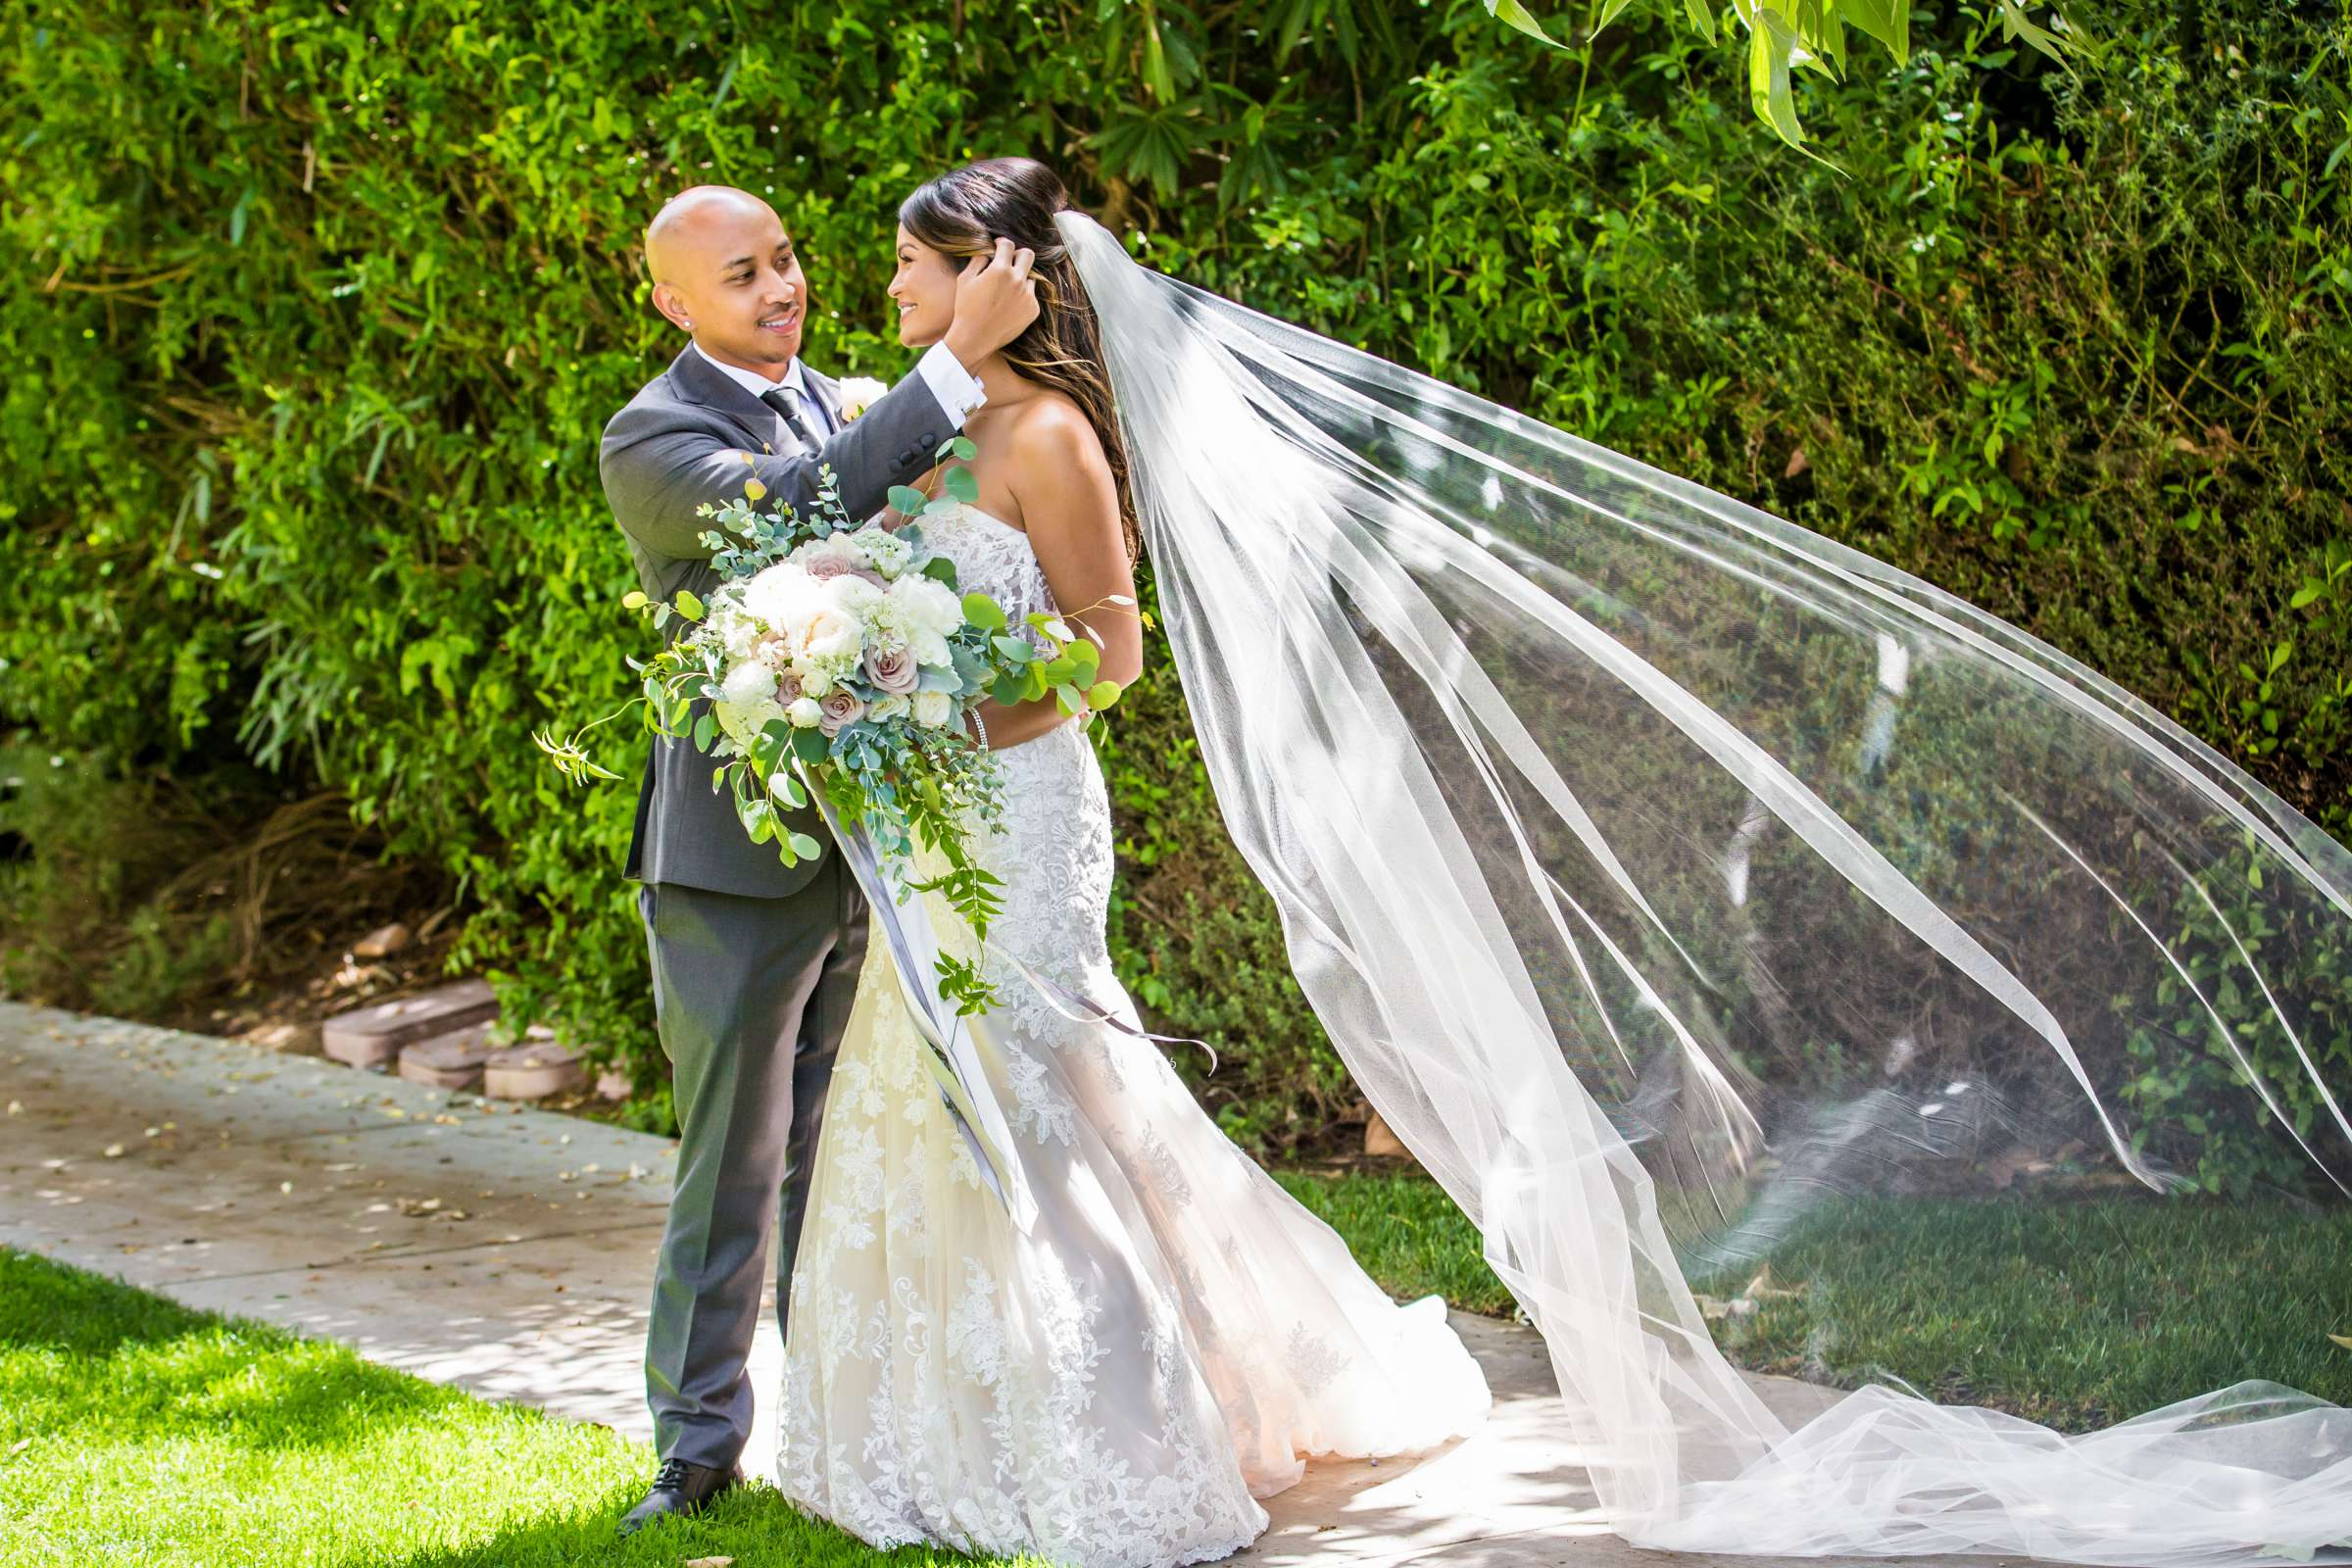 Scripps Seaside Forum Wedding coordinated by Lavish Weddings, Cindy and Justin Wedding Photo #381805 by True Photography